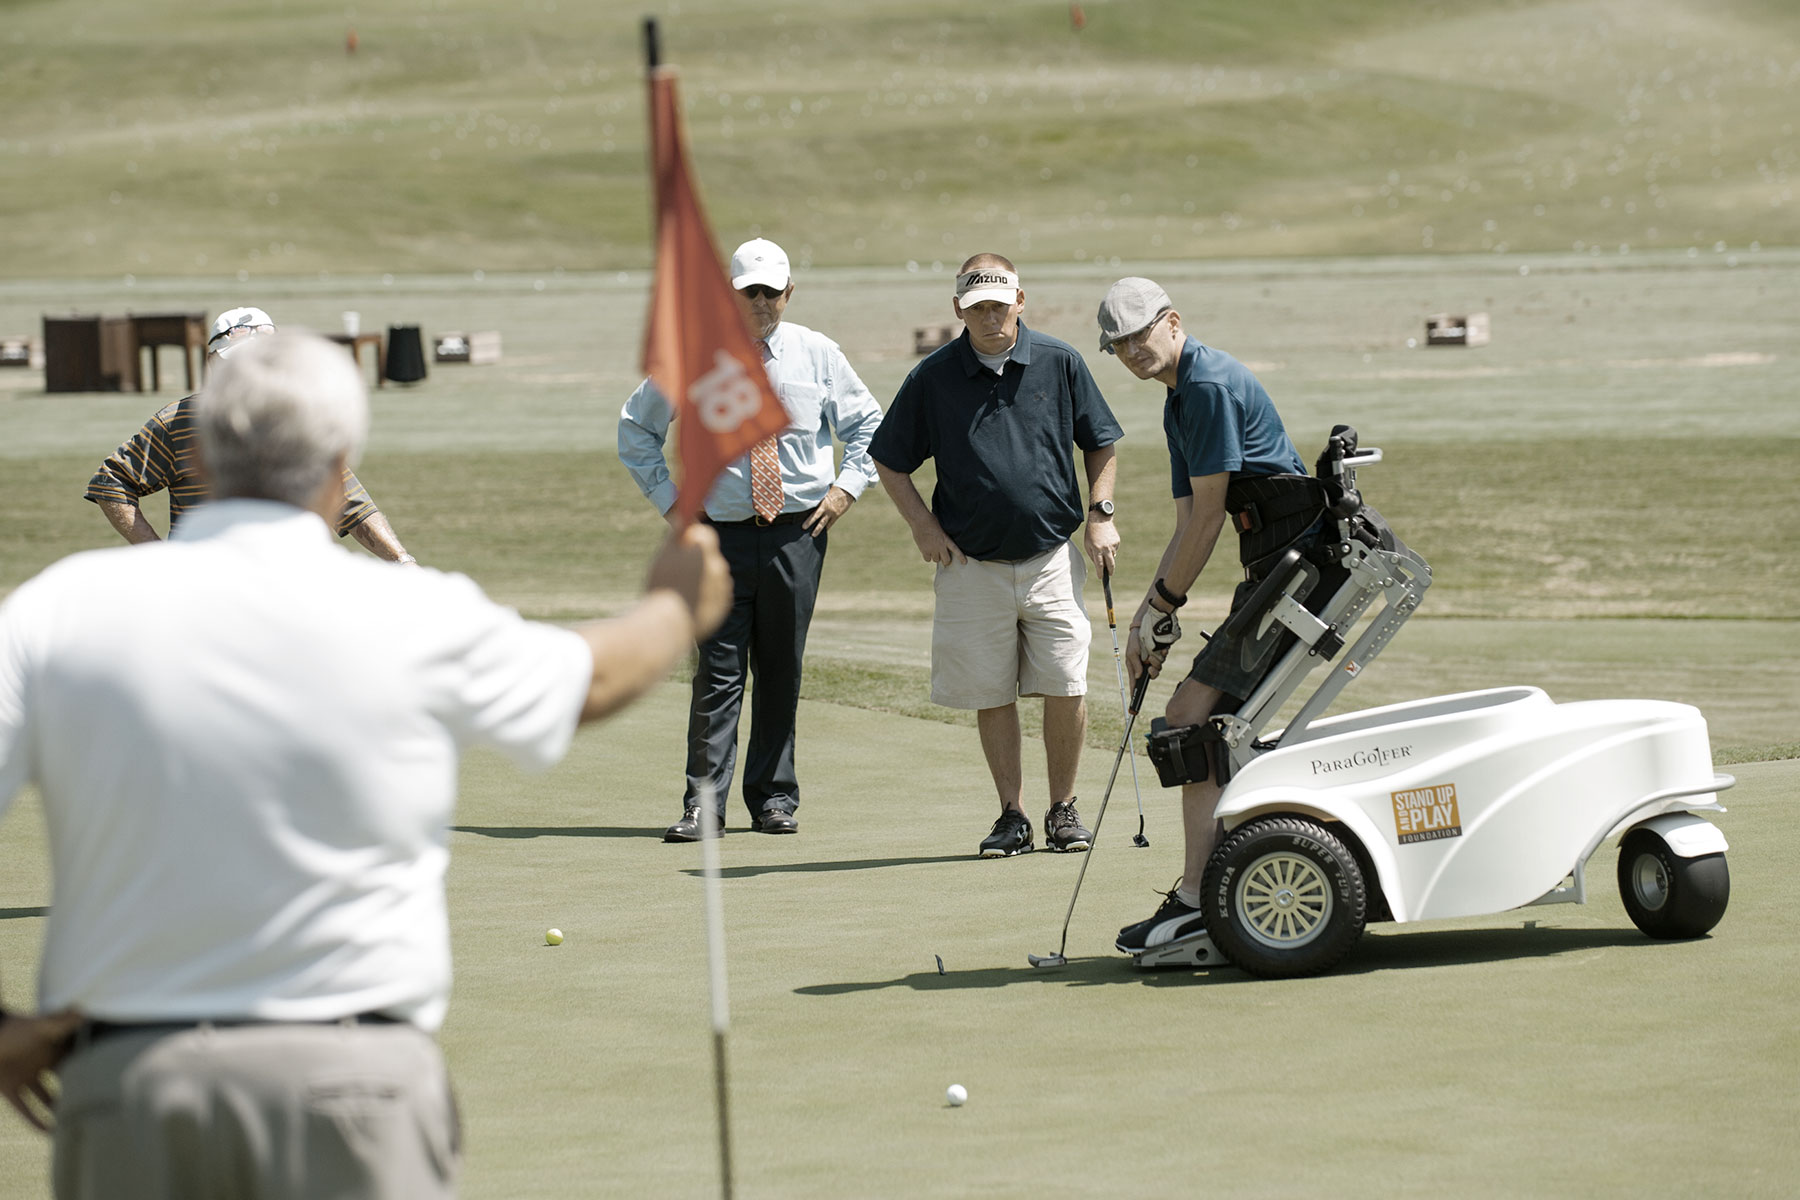 How PGA HOPE supports military Veterans through golf